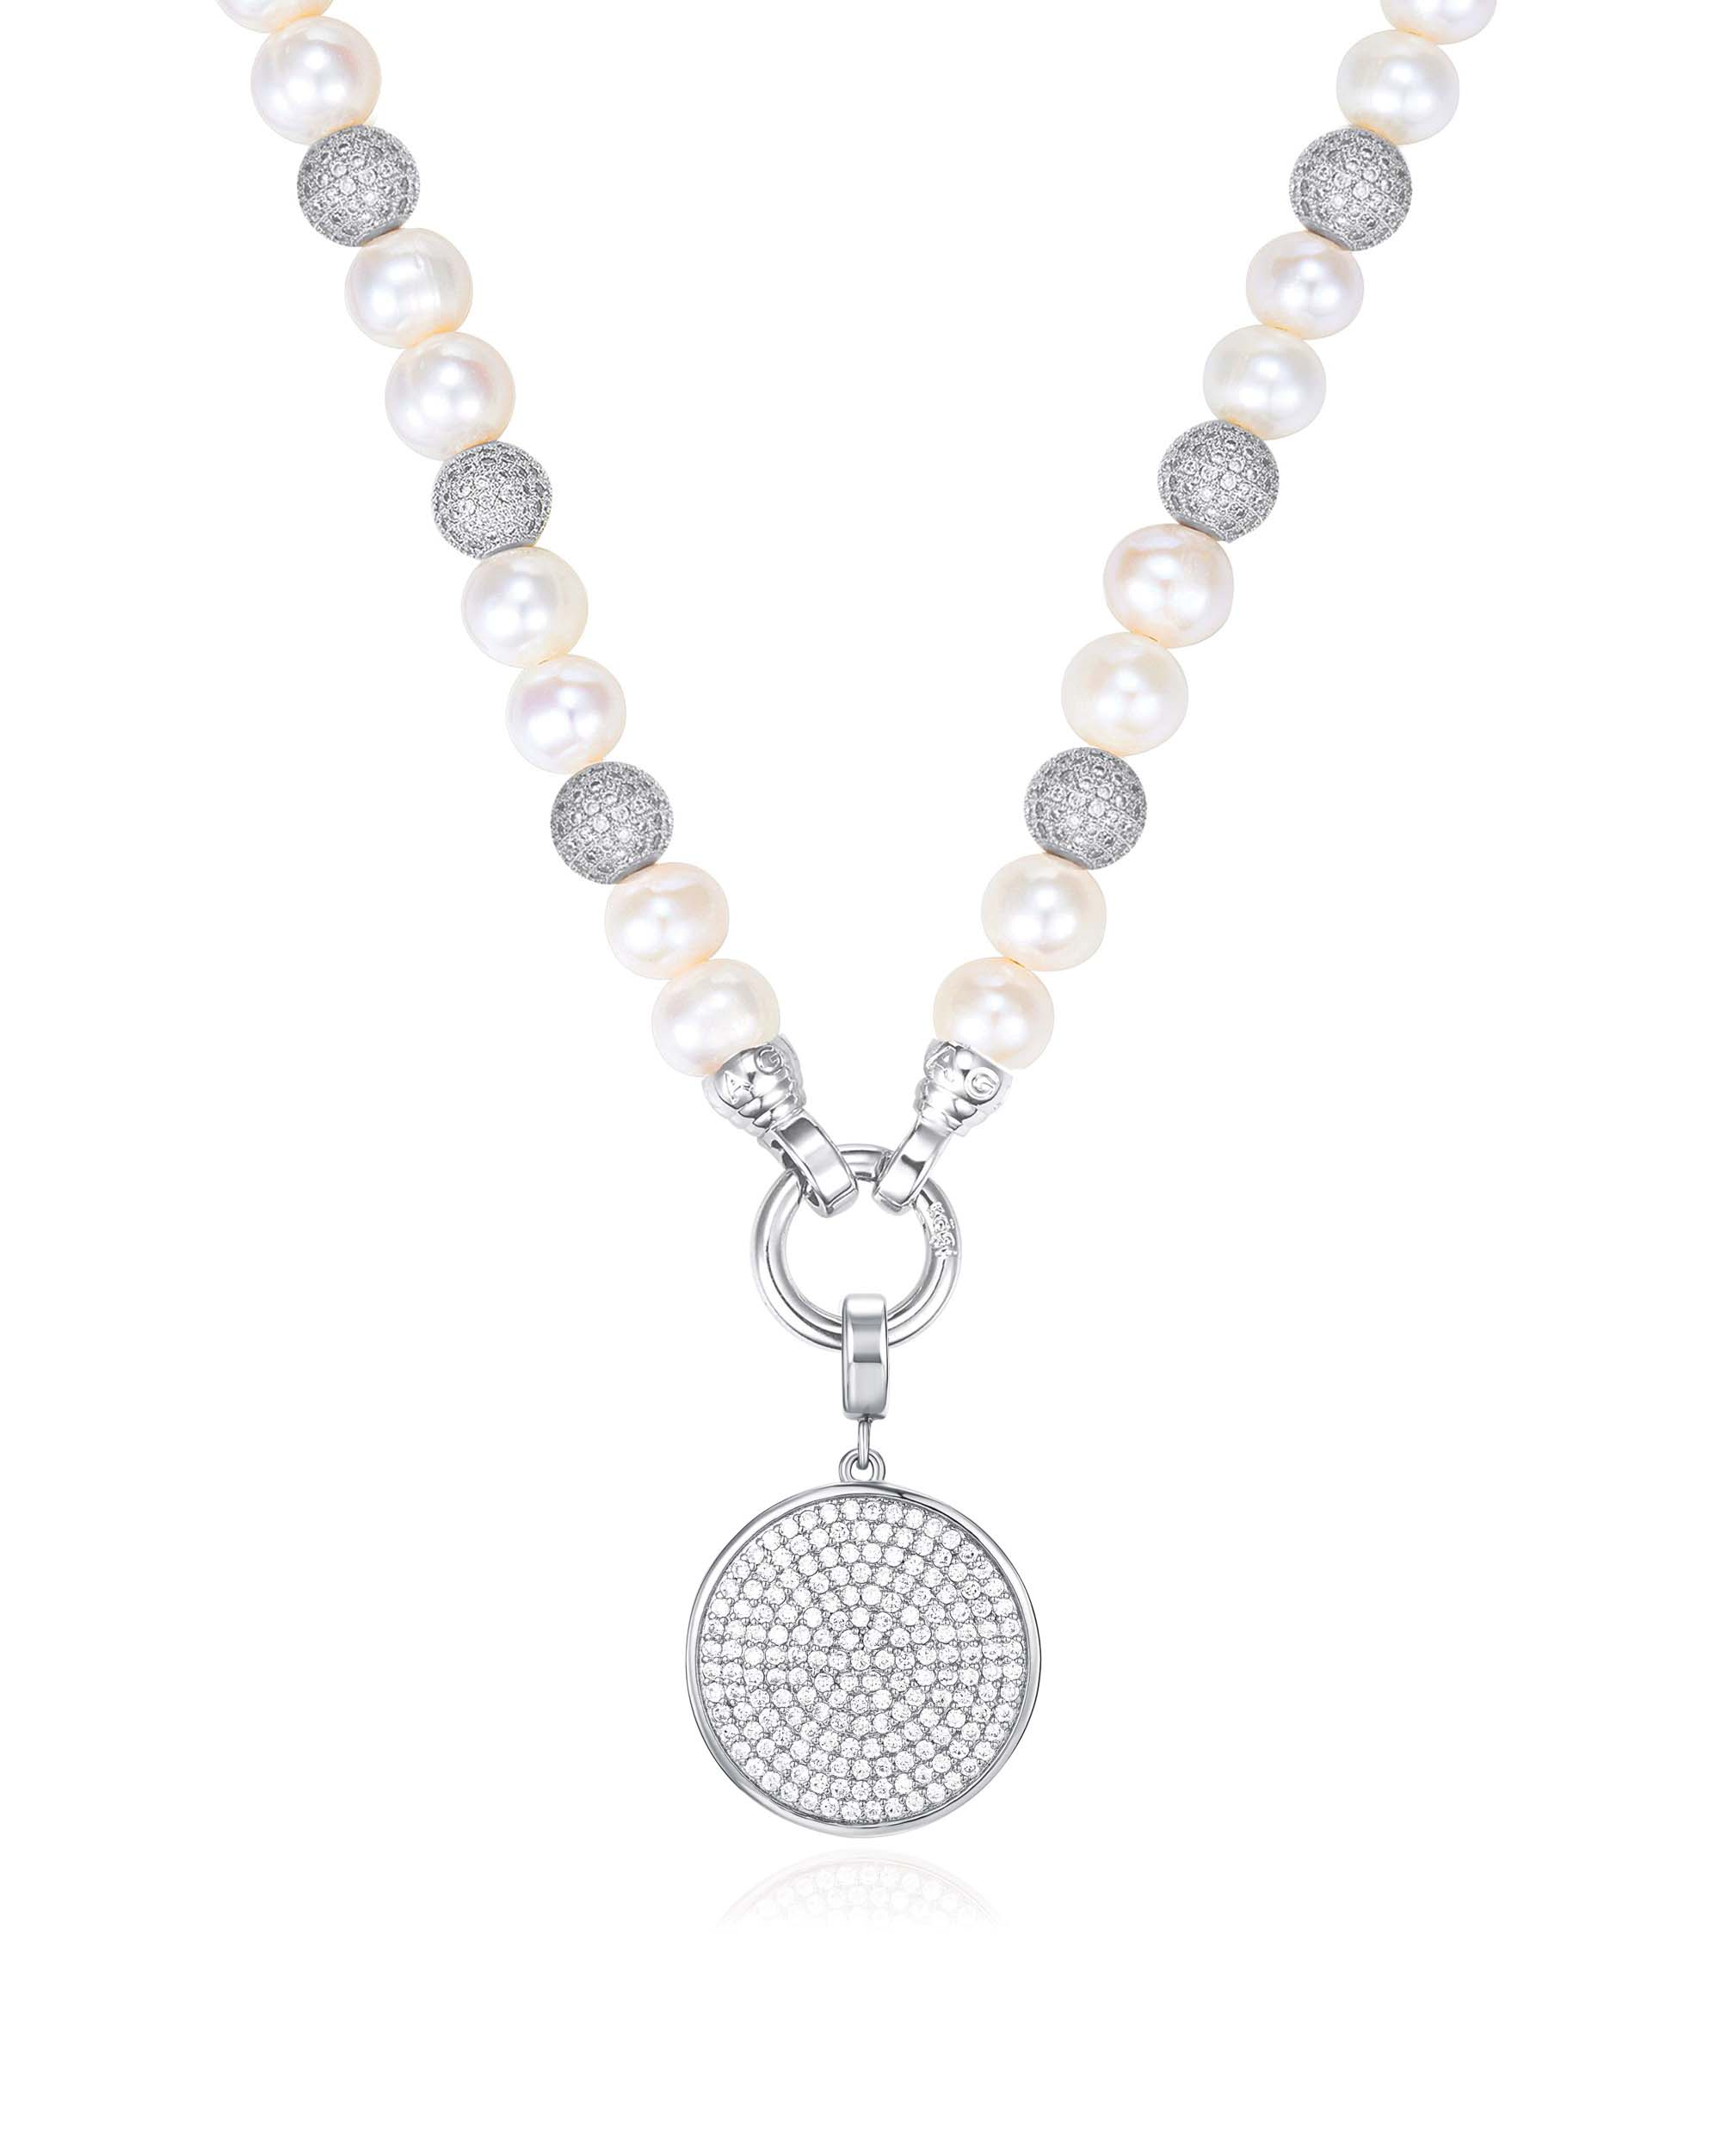 Kagi Pearl Luxe Necklace with Silver Cosmos Pendant $139 www.kagi.net